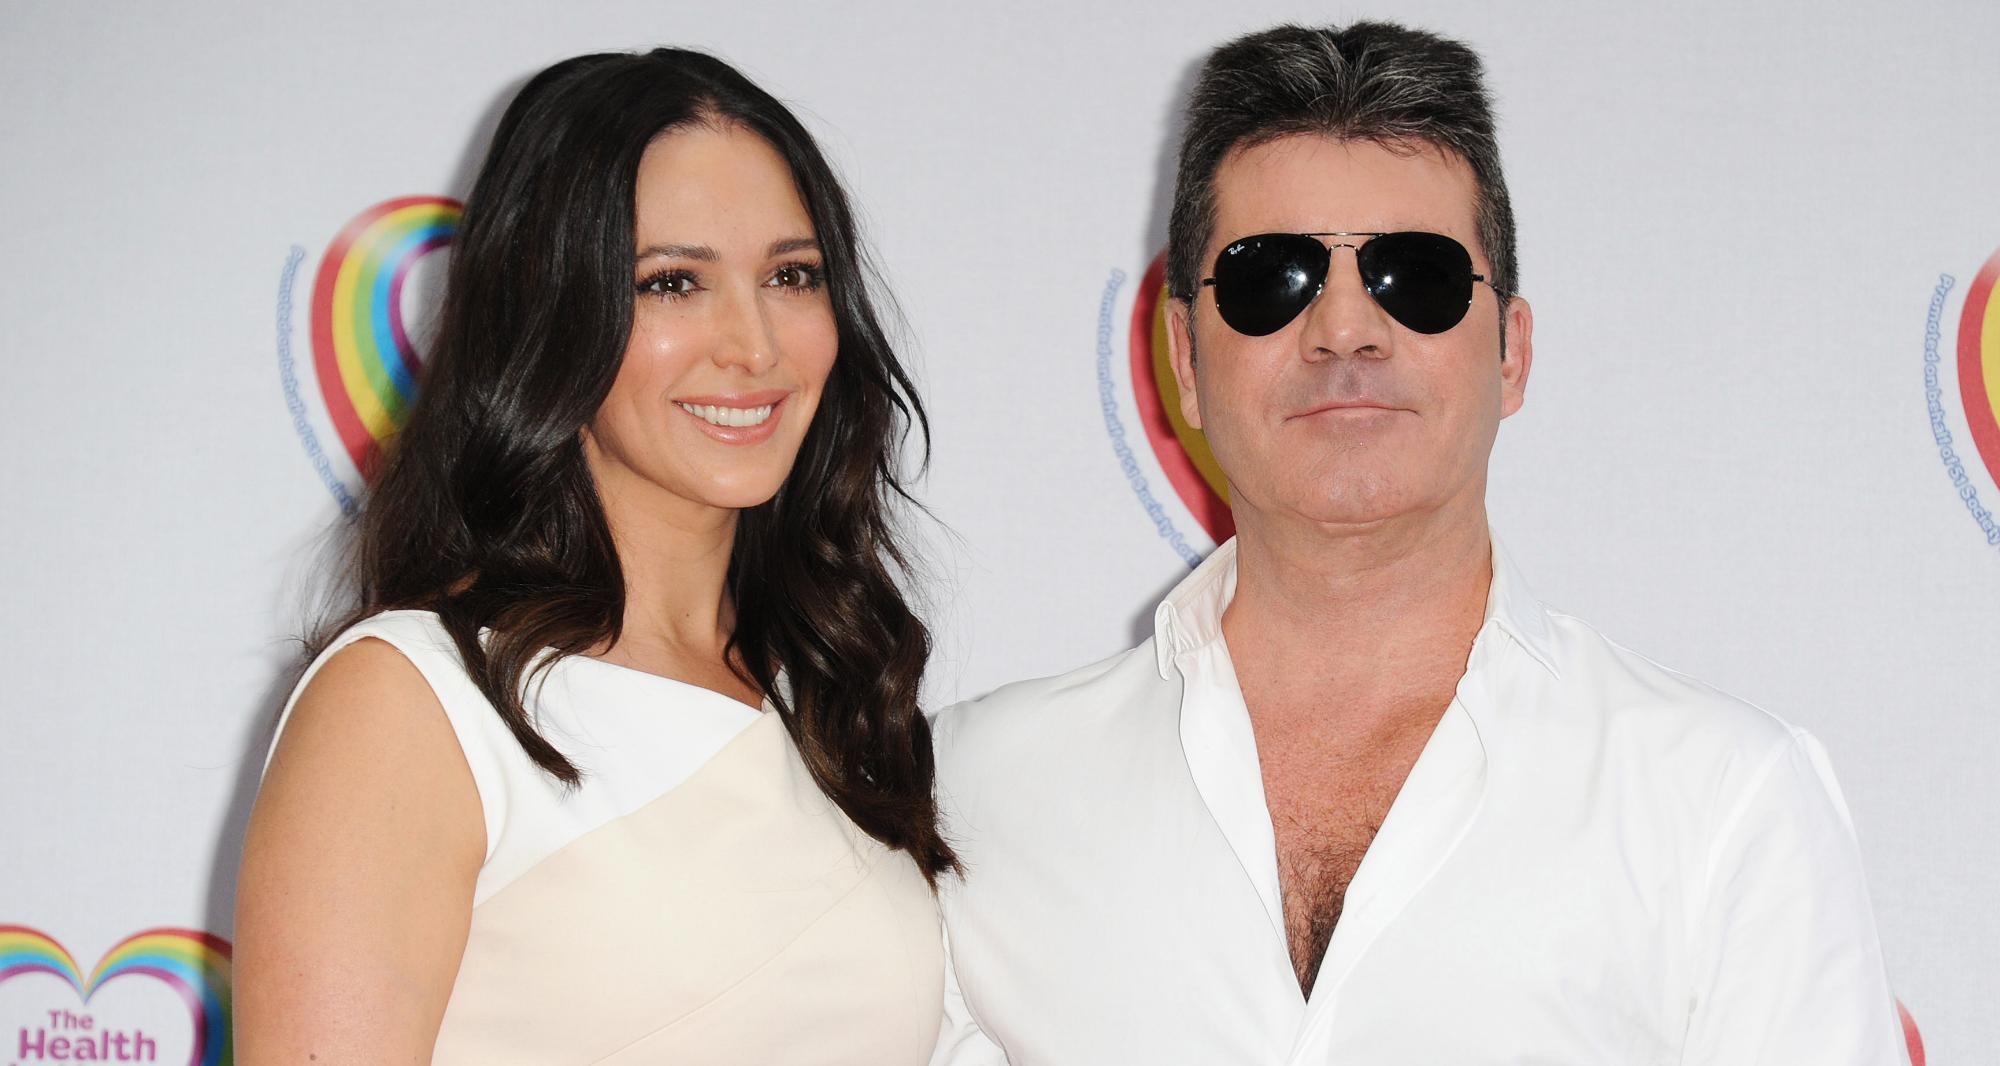 Simon Cowell And Lauren Silverman 18 Year Age Difference